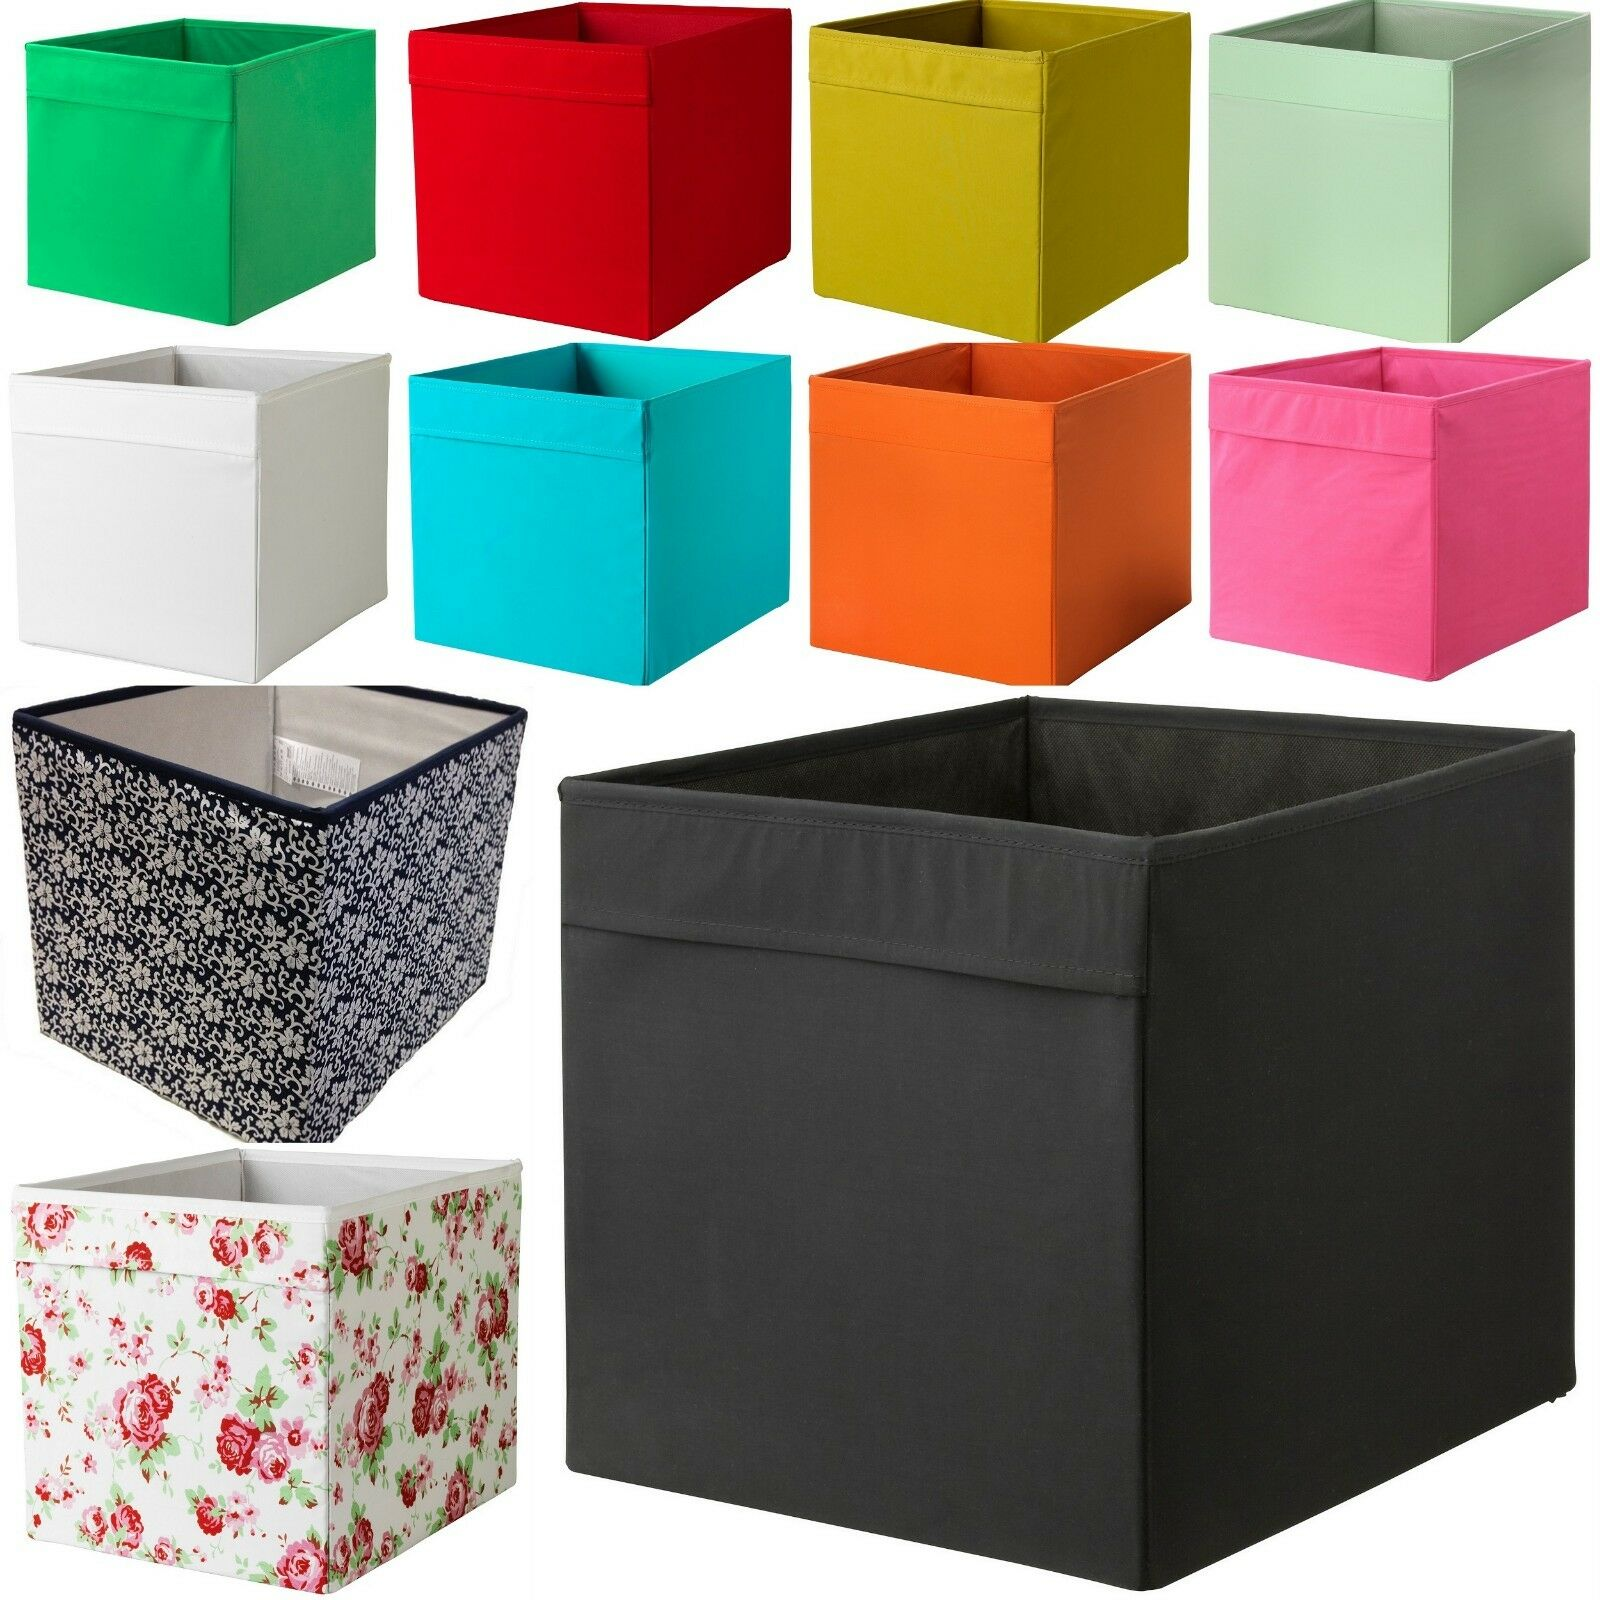 new ikea drona fabric storage box basket for expedit kallax shelf unit bookcase eur 6 82. Black Bedroom Furniture Sets. Home Design Ideas